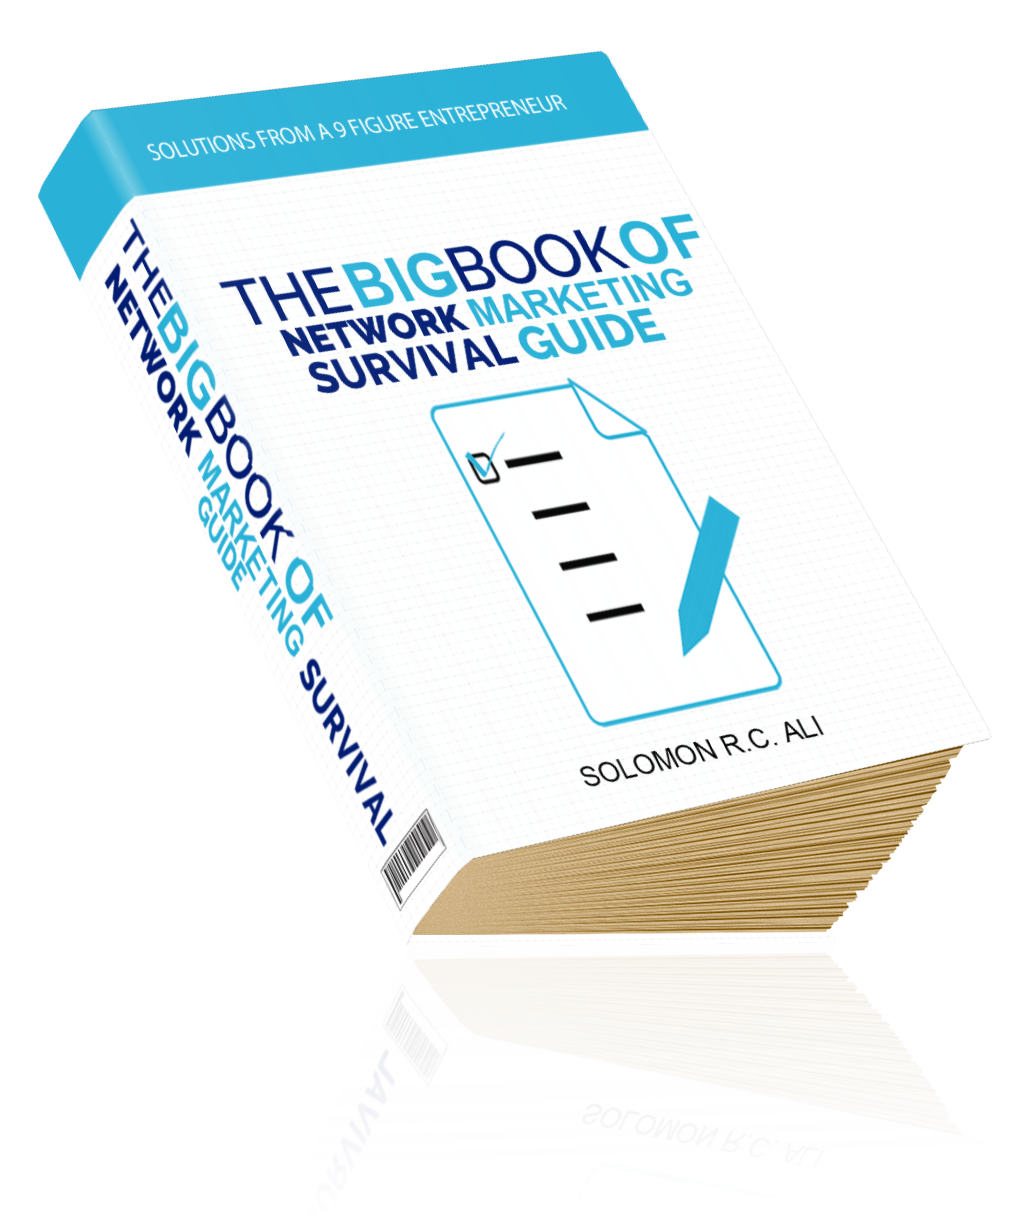 The Big Book of Network Marketing Survival Guide